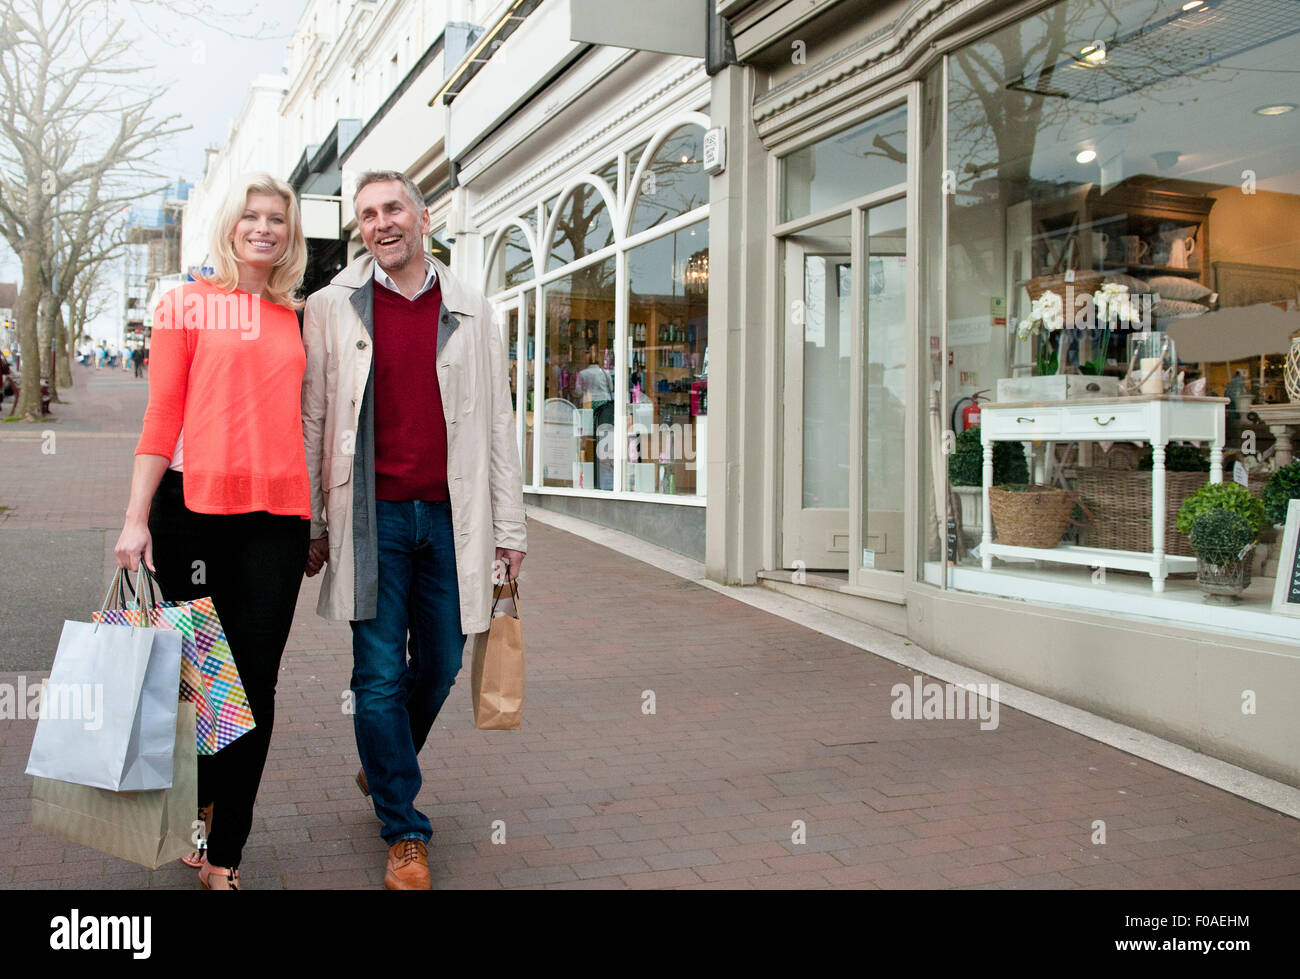 Couple carrying shopping bags on village street - Stock Image